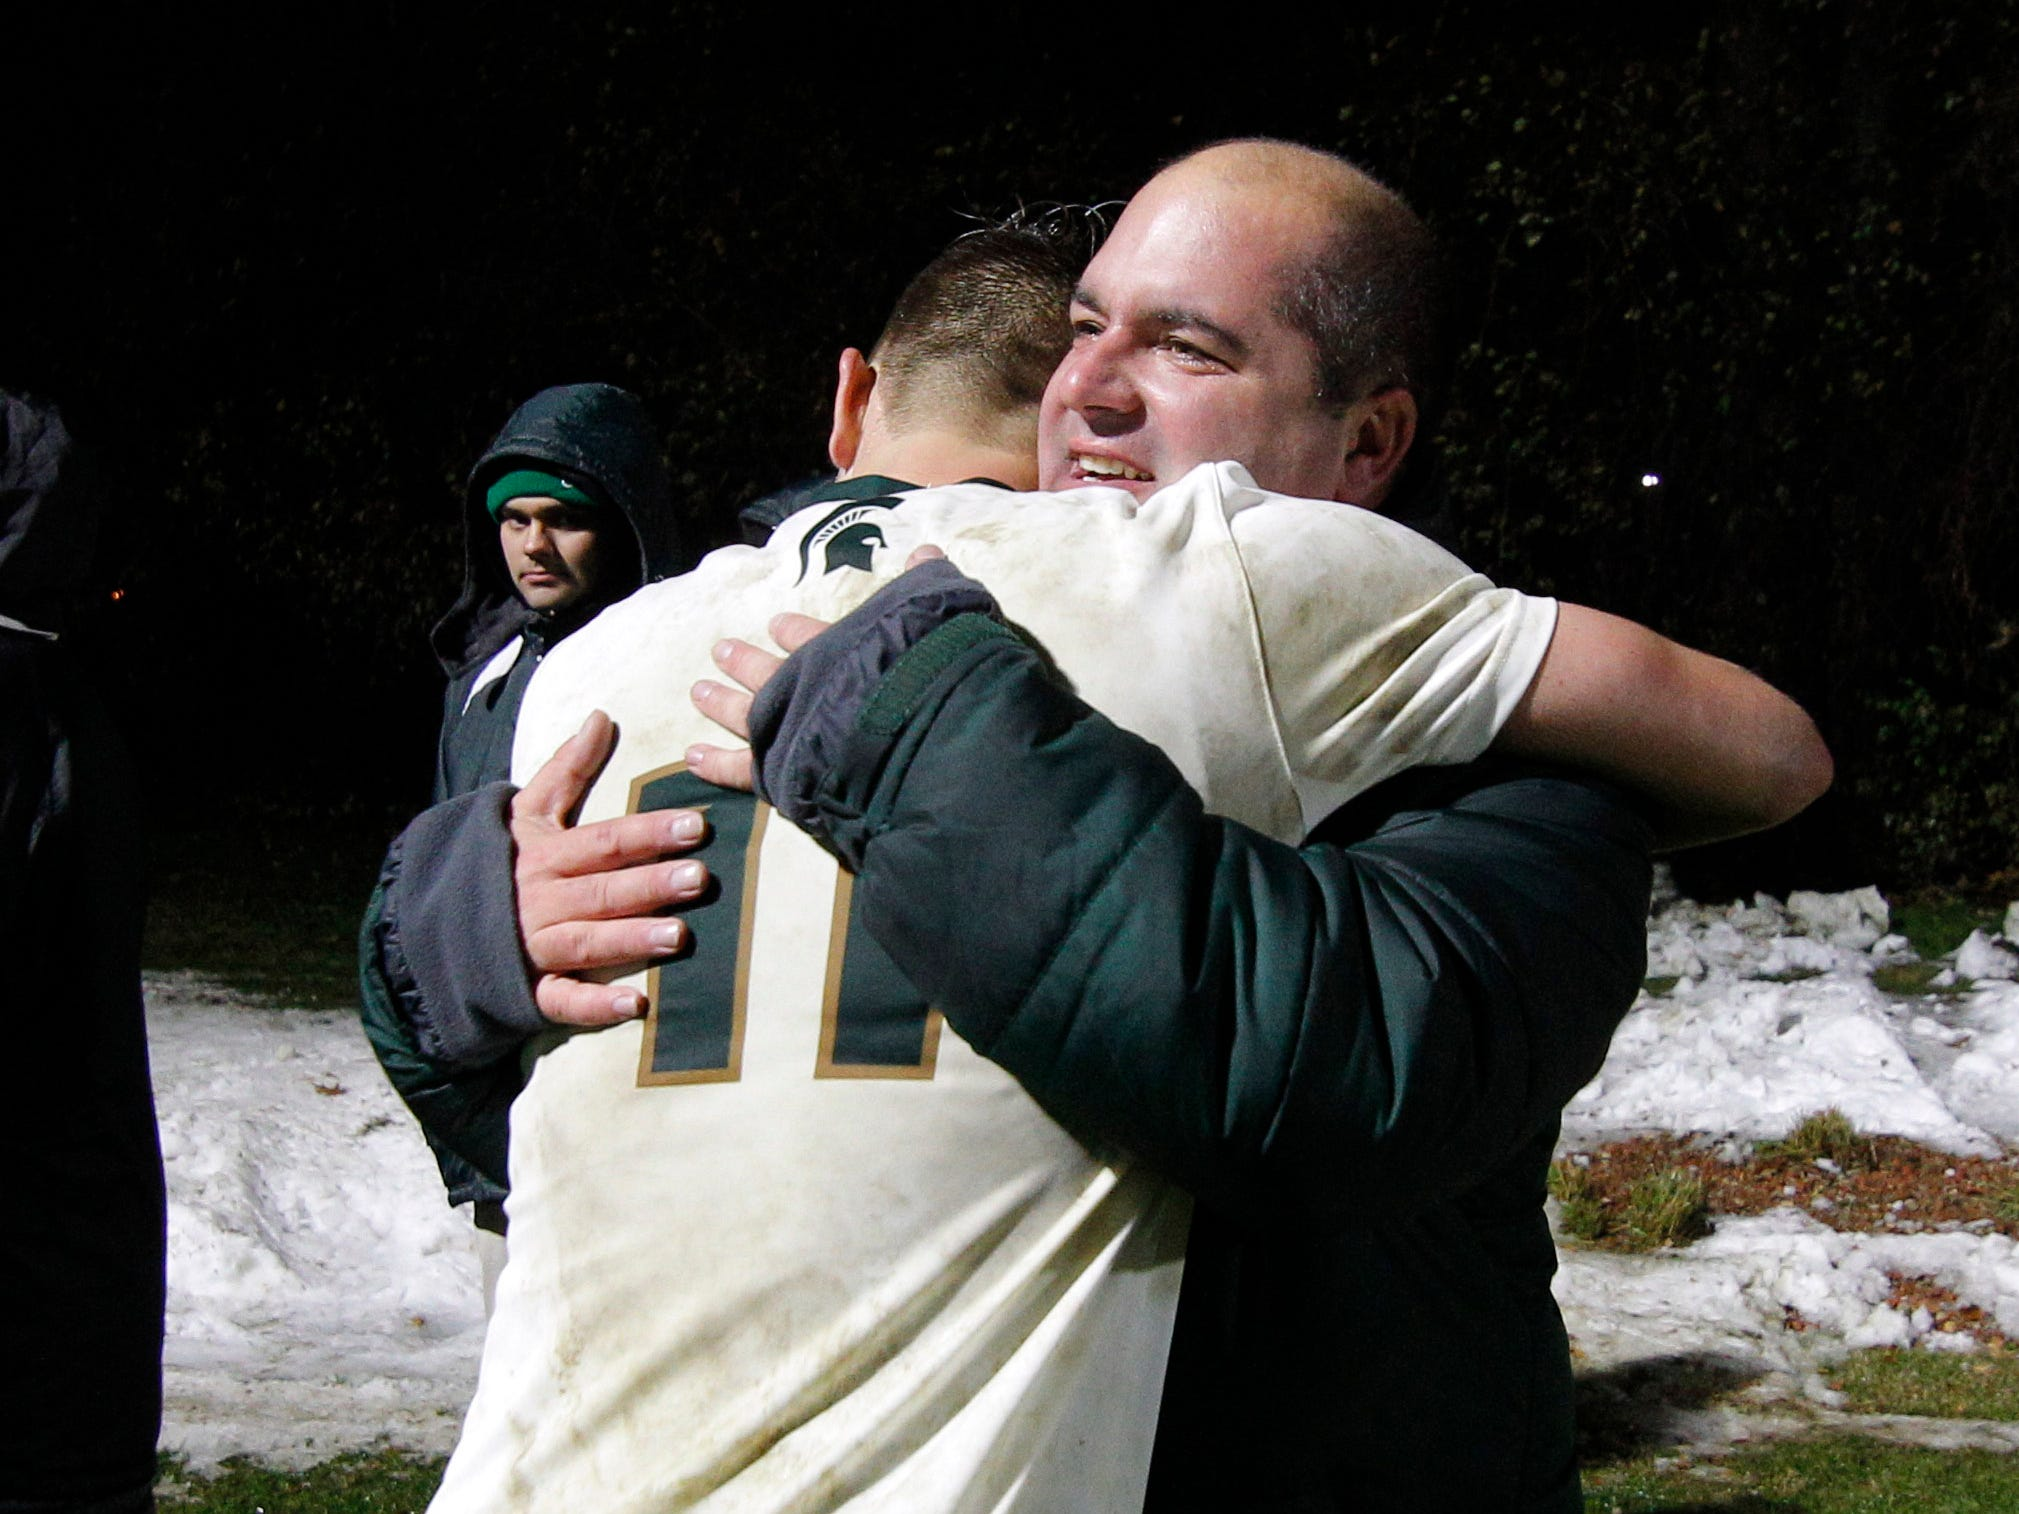 Michigan State's Ryan Sierakowski, left, and coach Damon Rensing hug following a 2-1 win over James Madison, Saturday, Dec. 1, 2018, in East Lansing, Mich. Sierakowski scored both of MSU's goals.